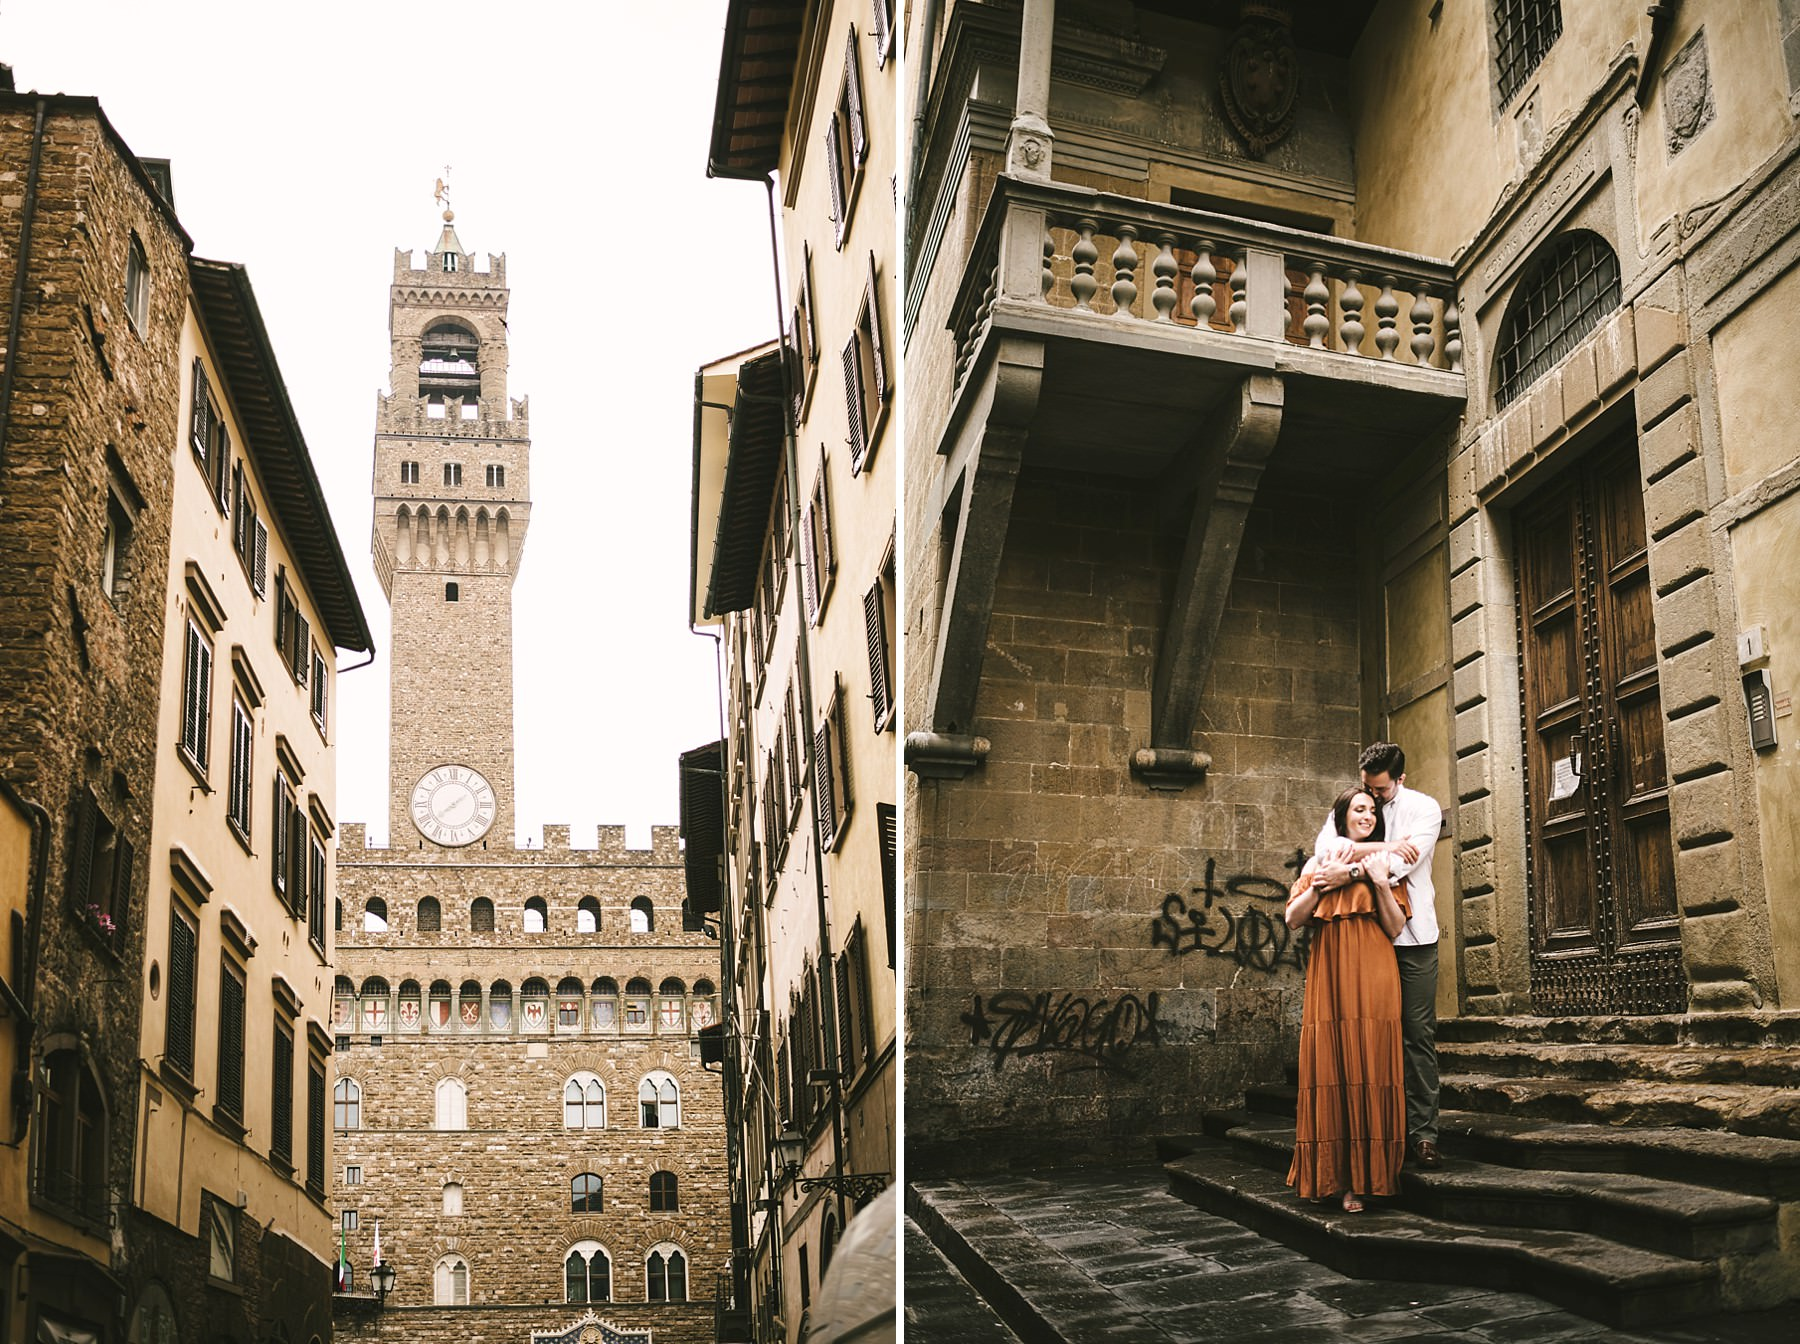 Take a walk tour in the heart of Florence at sunrise time. Anyone will be around you and the photo shoot experience will be awesome and unforgettable